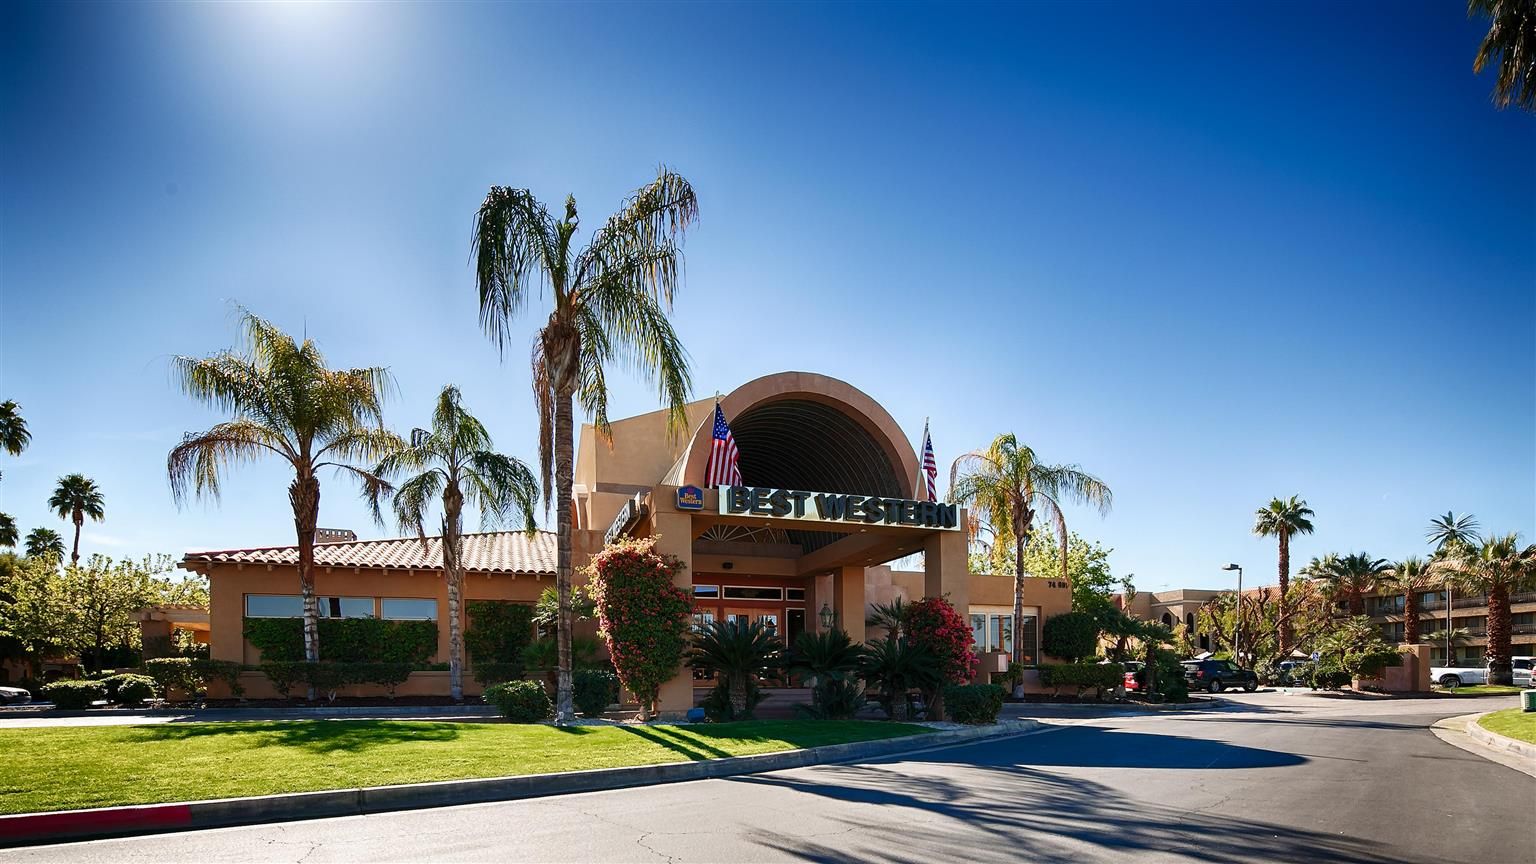 Best Western Plus Palm Desert Resort - Amazing hotel located desert looks like ultimate escape